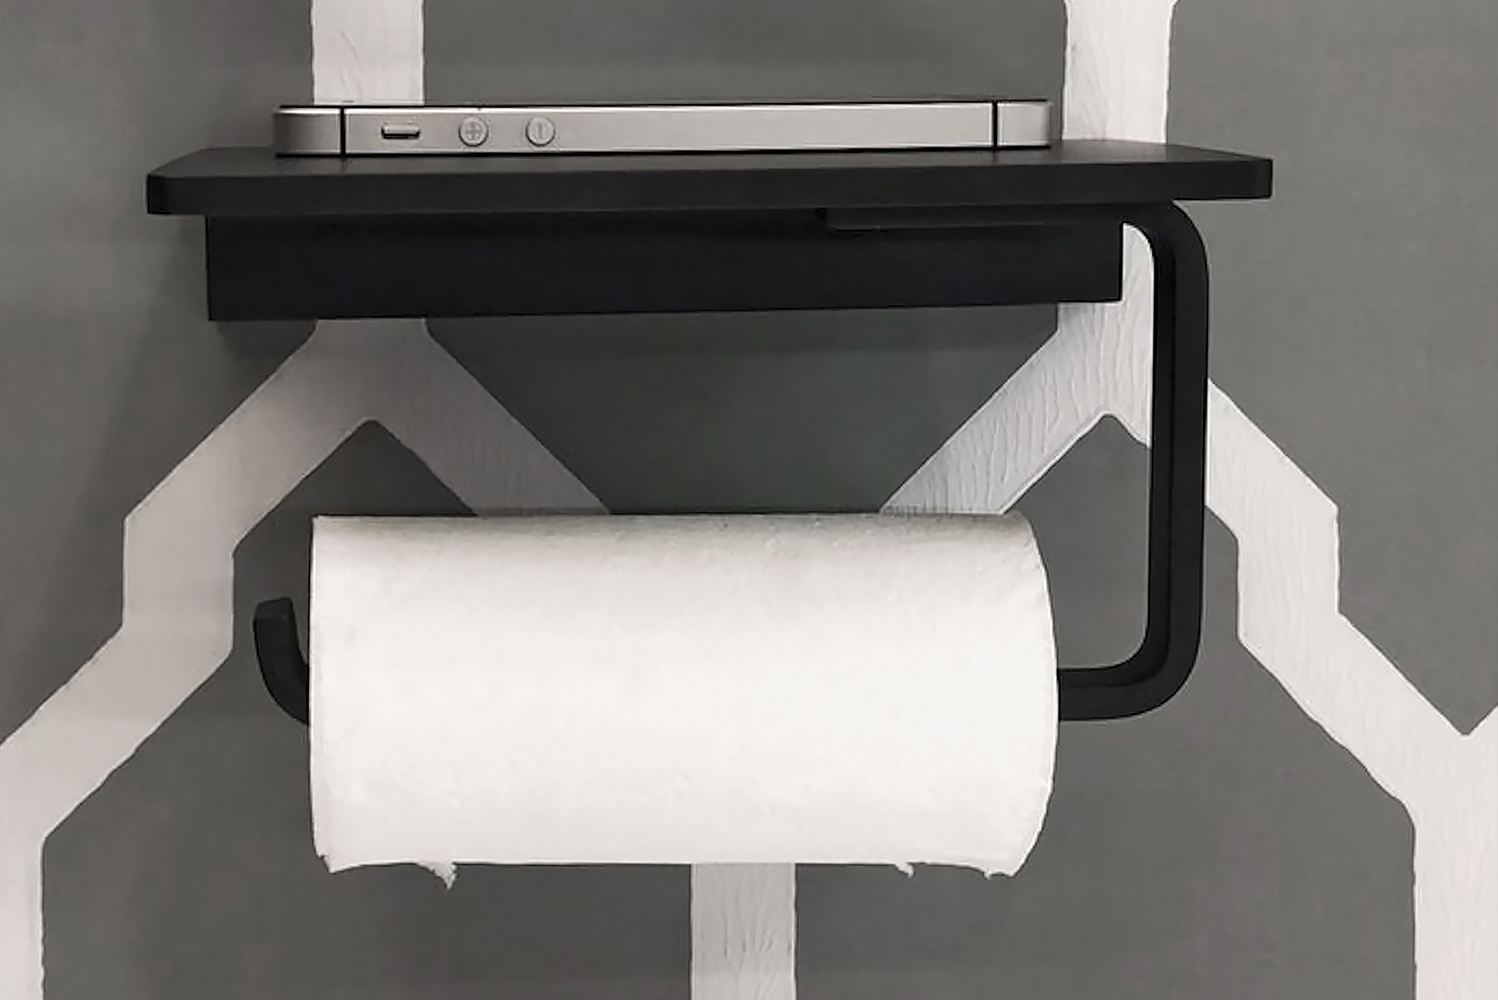 Besides holding toilet paper, the holders offer a place to put smart phones and other small items when in the bathroom.